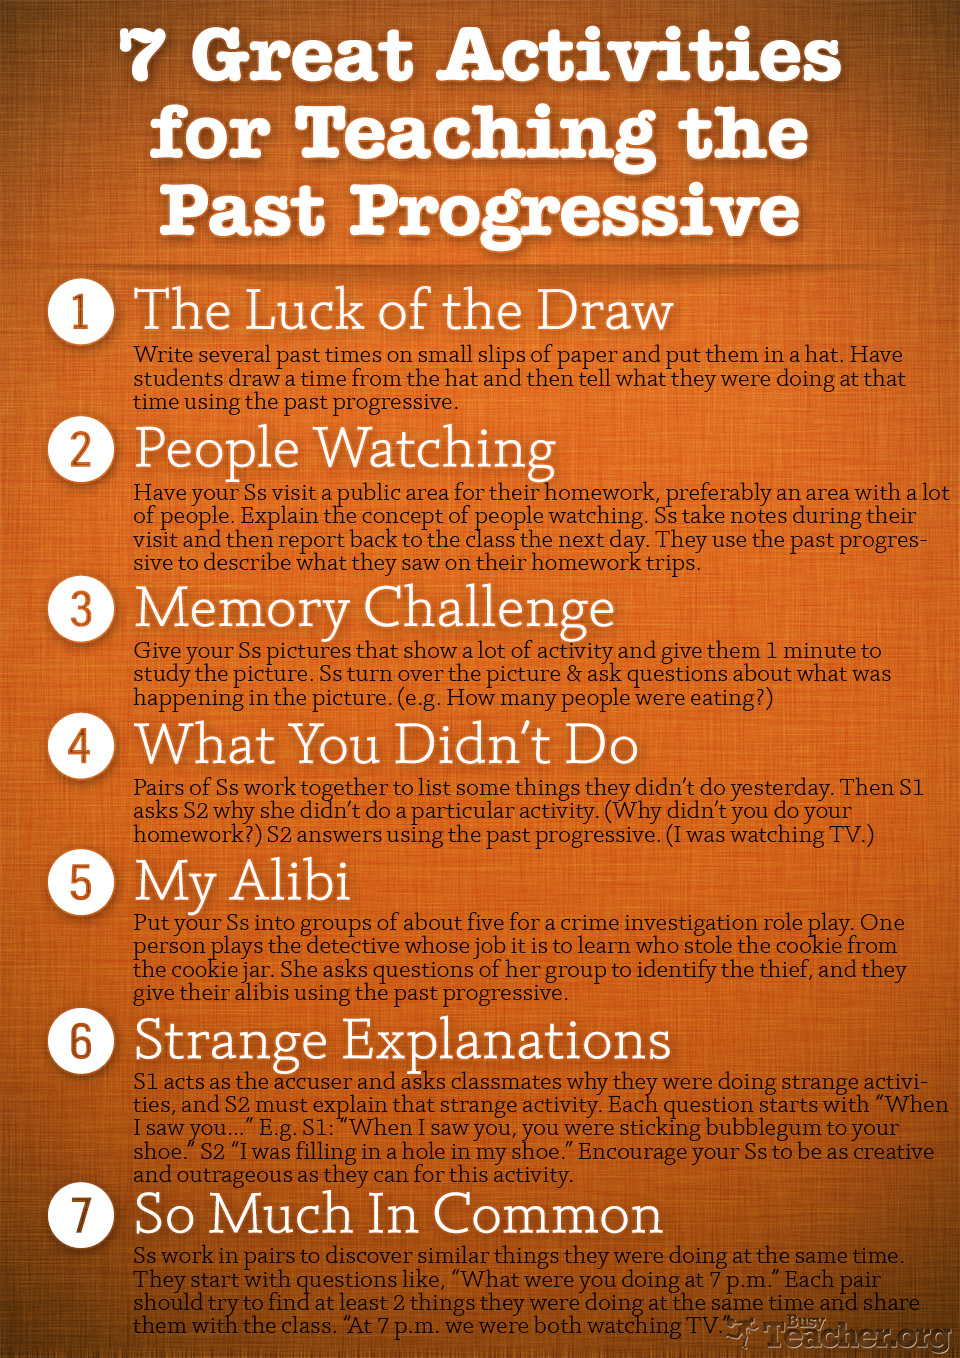 7 Great Activities to Teach the Past Progressive: Poster